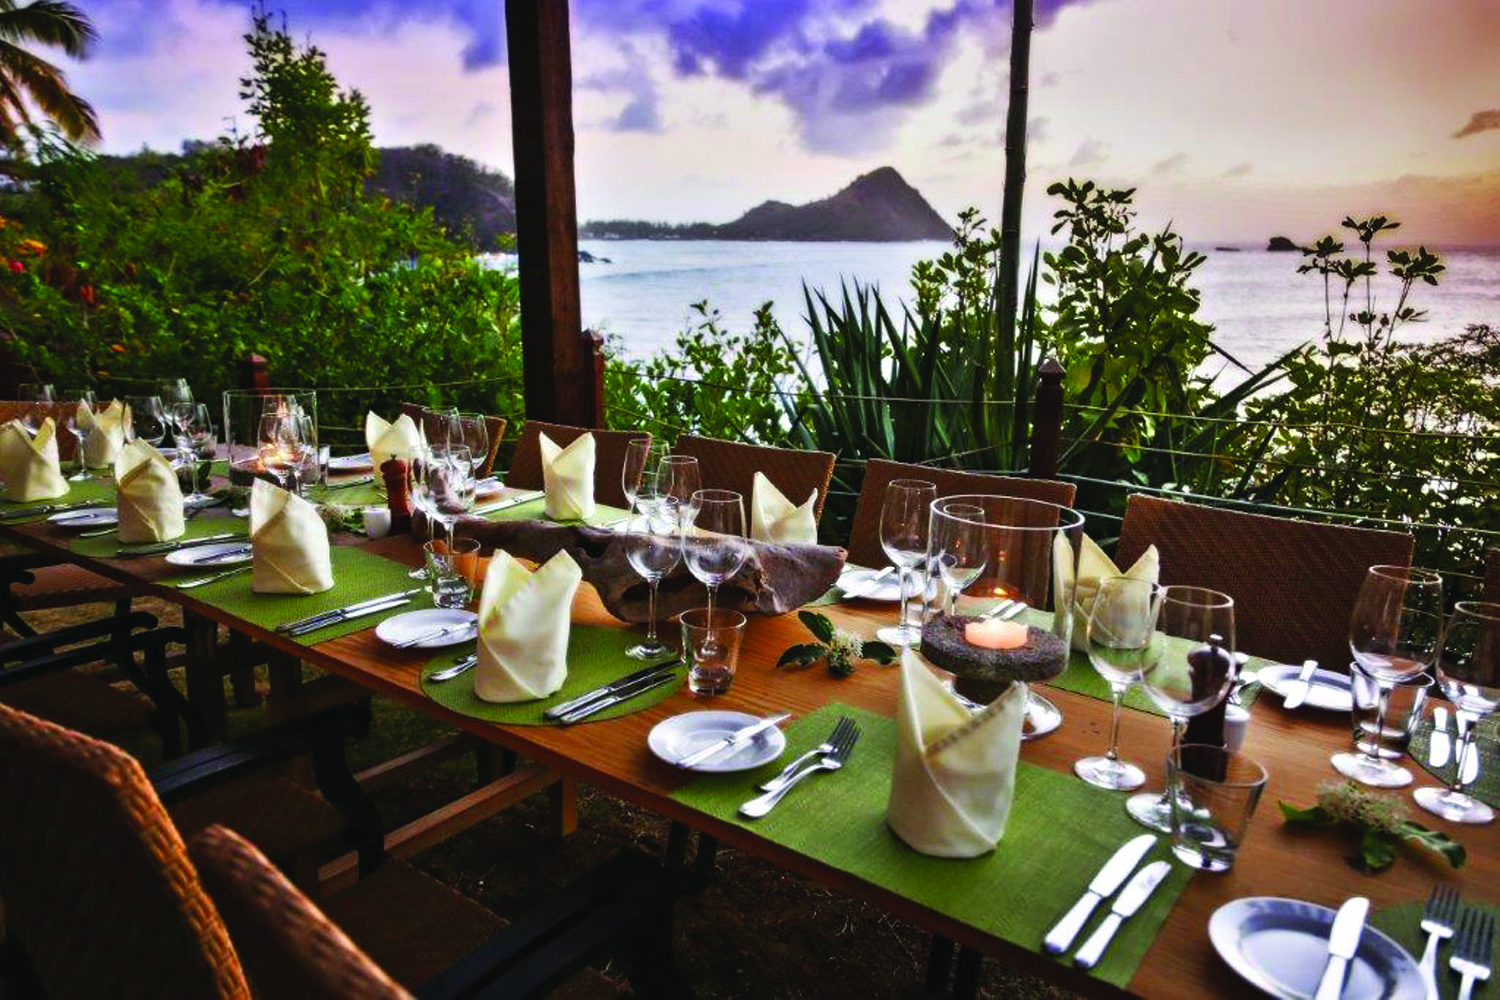 Dining with stunning views at Cap Maison in Saint Lucia.